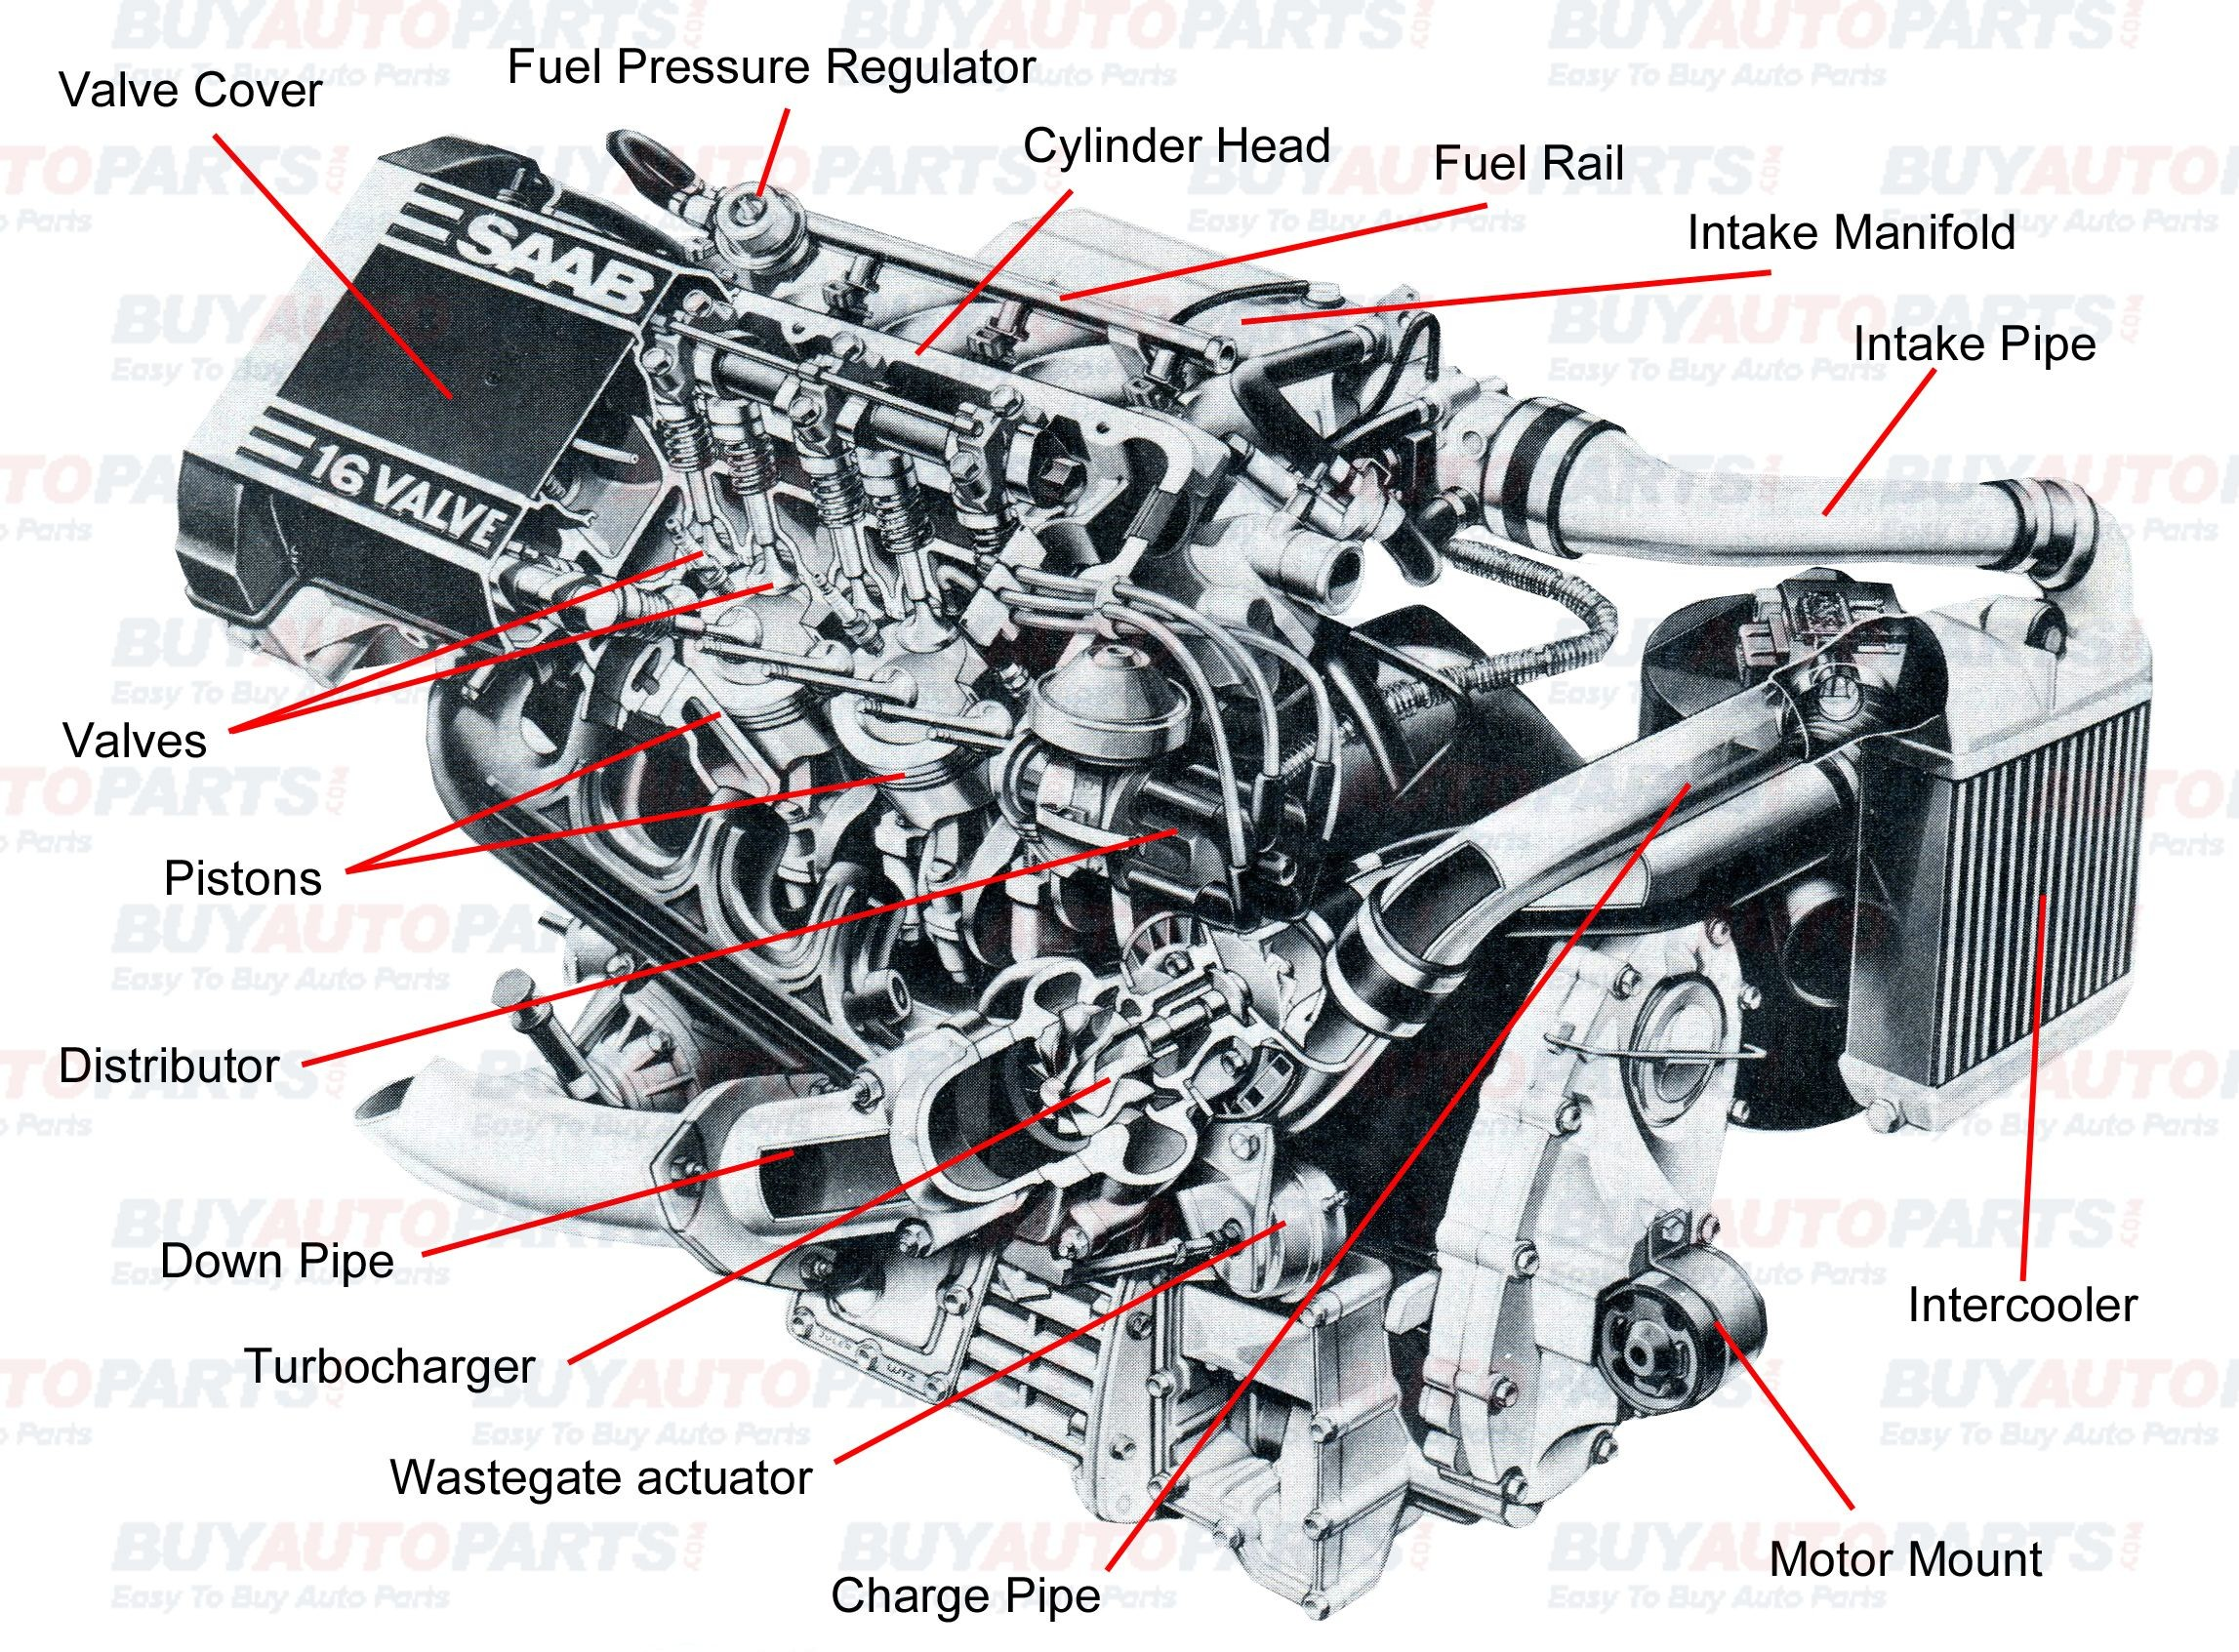 Car Engine Diagram Parts Pin by Jimmiejanet Testellamwfz On What Does An Engine with Turbo Of Car Engine Diagram Parts